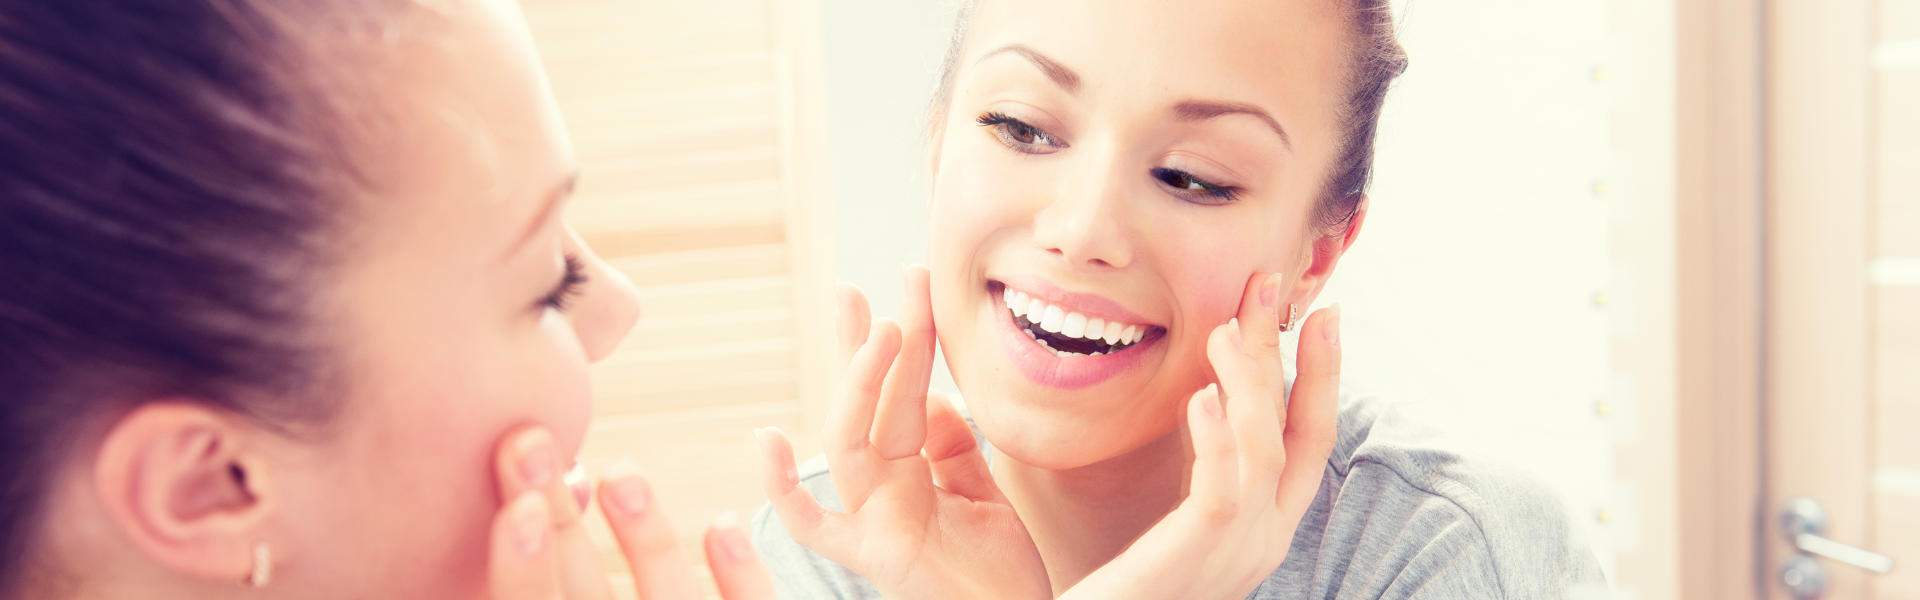 Cheerful young woman in front of a mirror looking at her perfect teeth after having Cerec Crowns applied